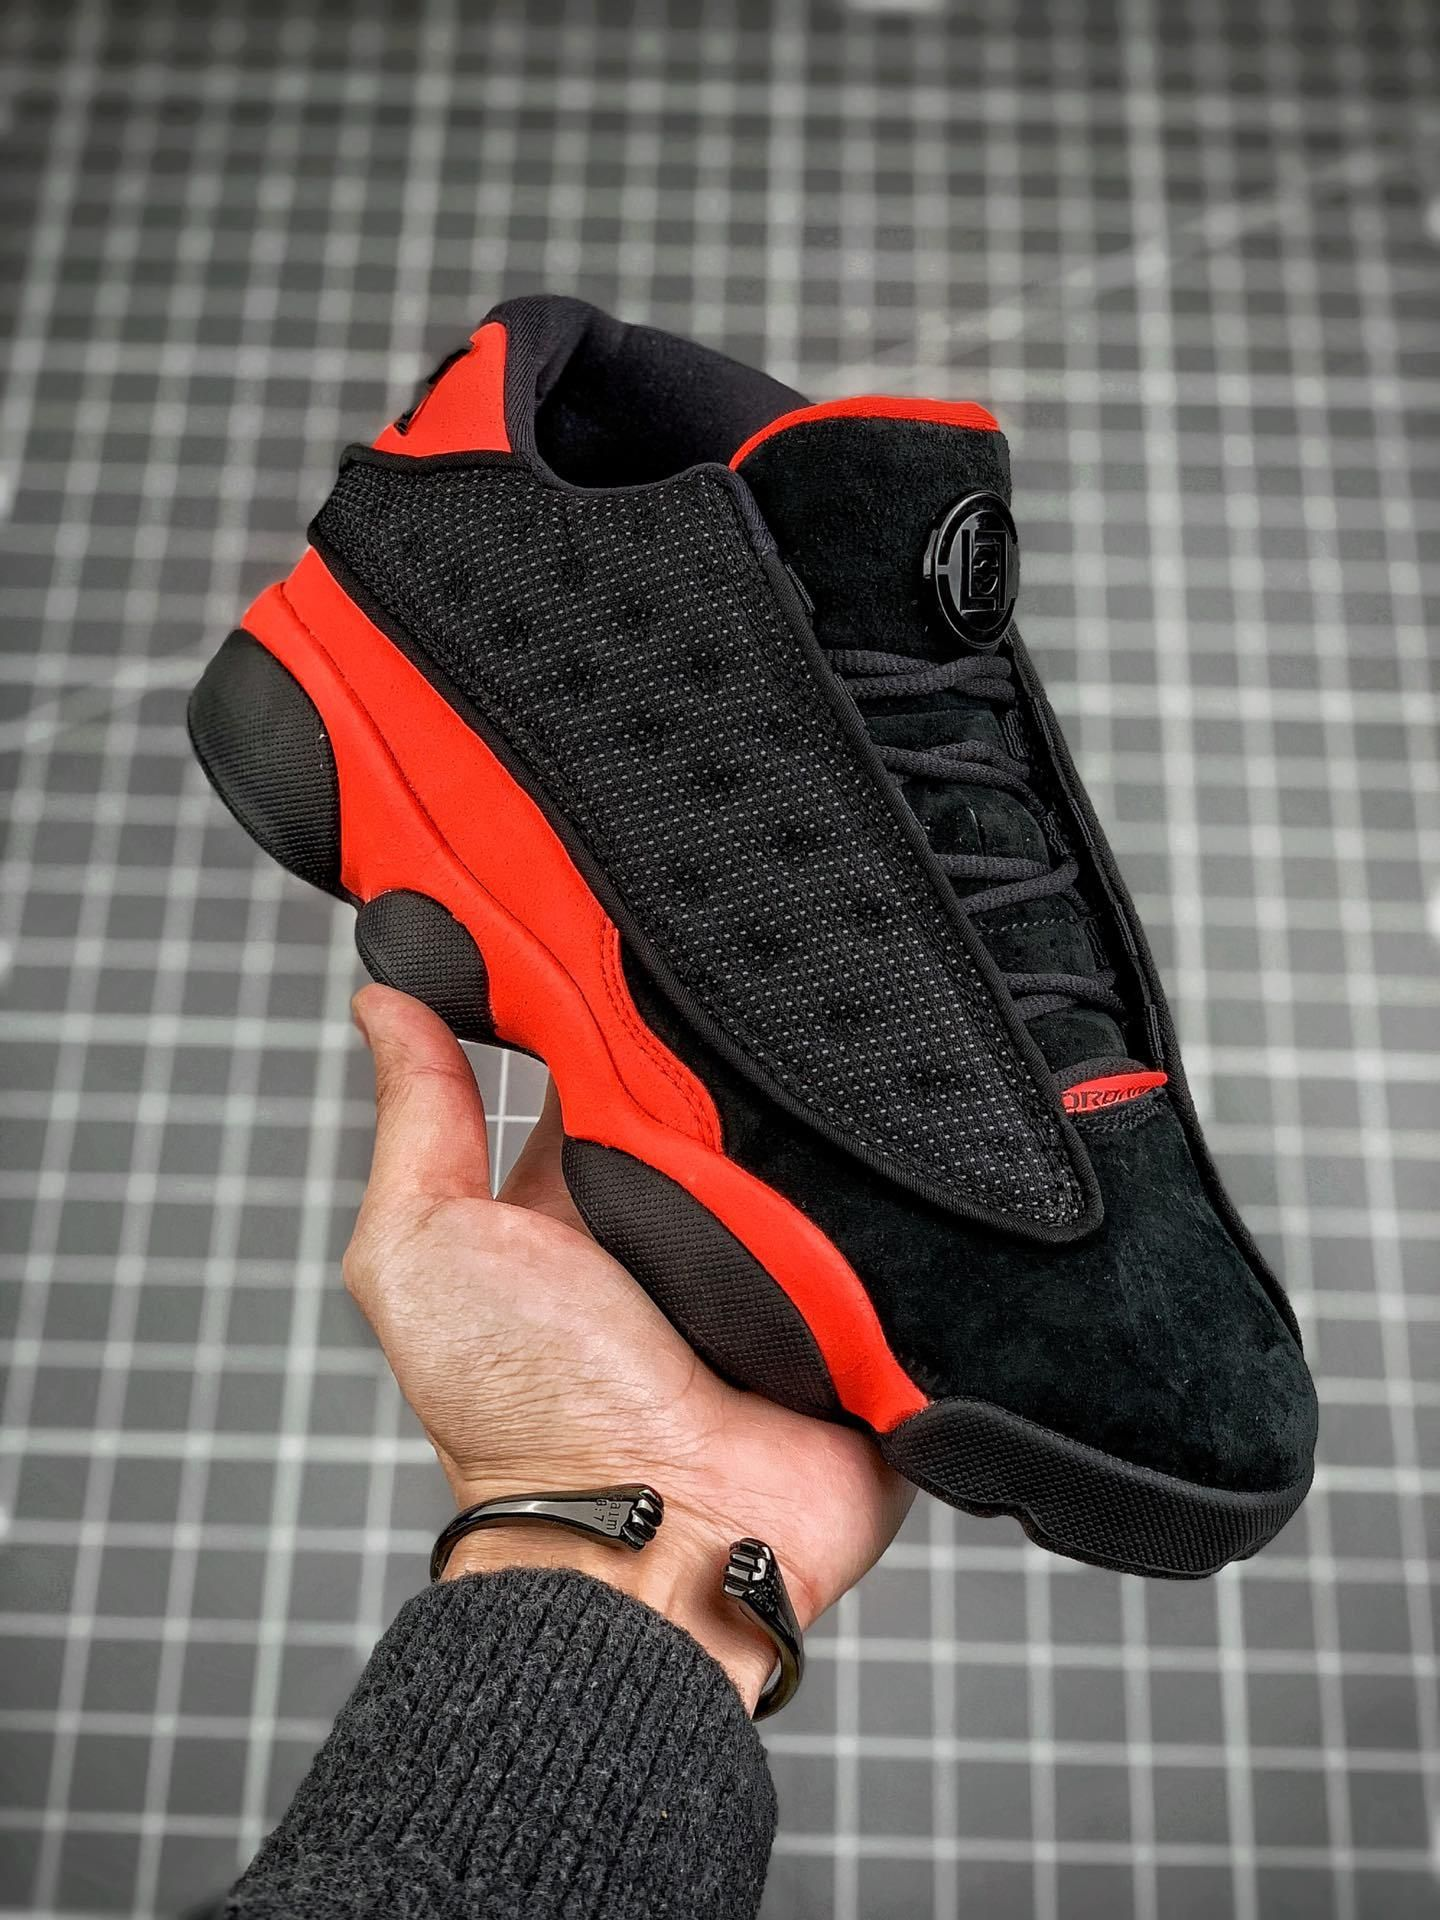 5e0c54bc224 CLOT x Air Jordan 13 Low AJ13 AT3102-006 | Nike Air Jordan in 2019